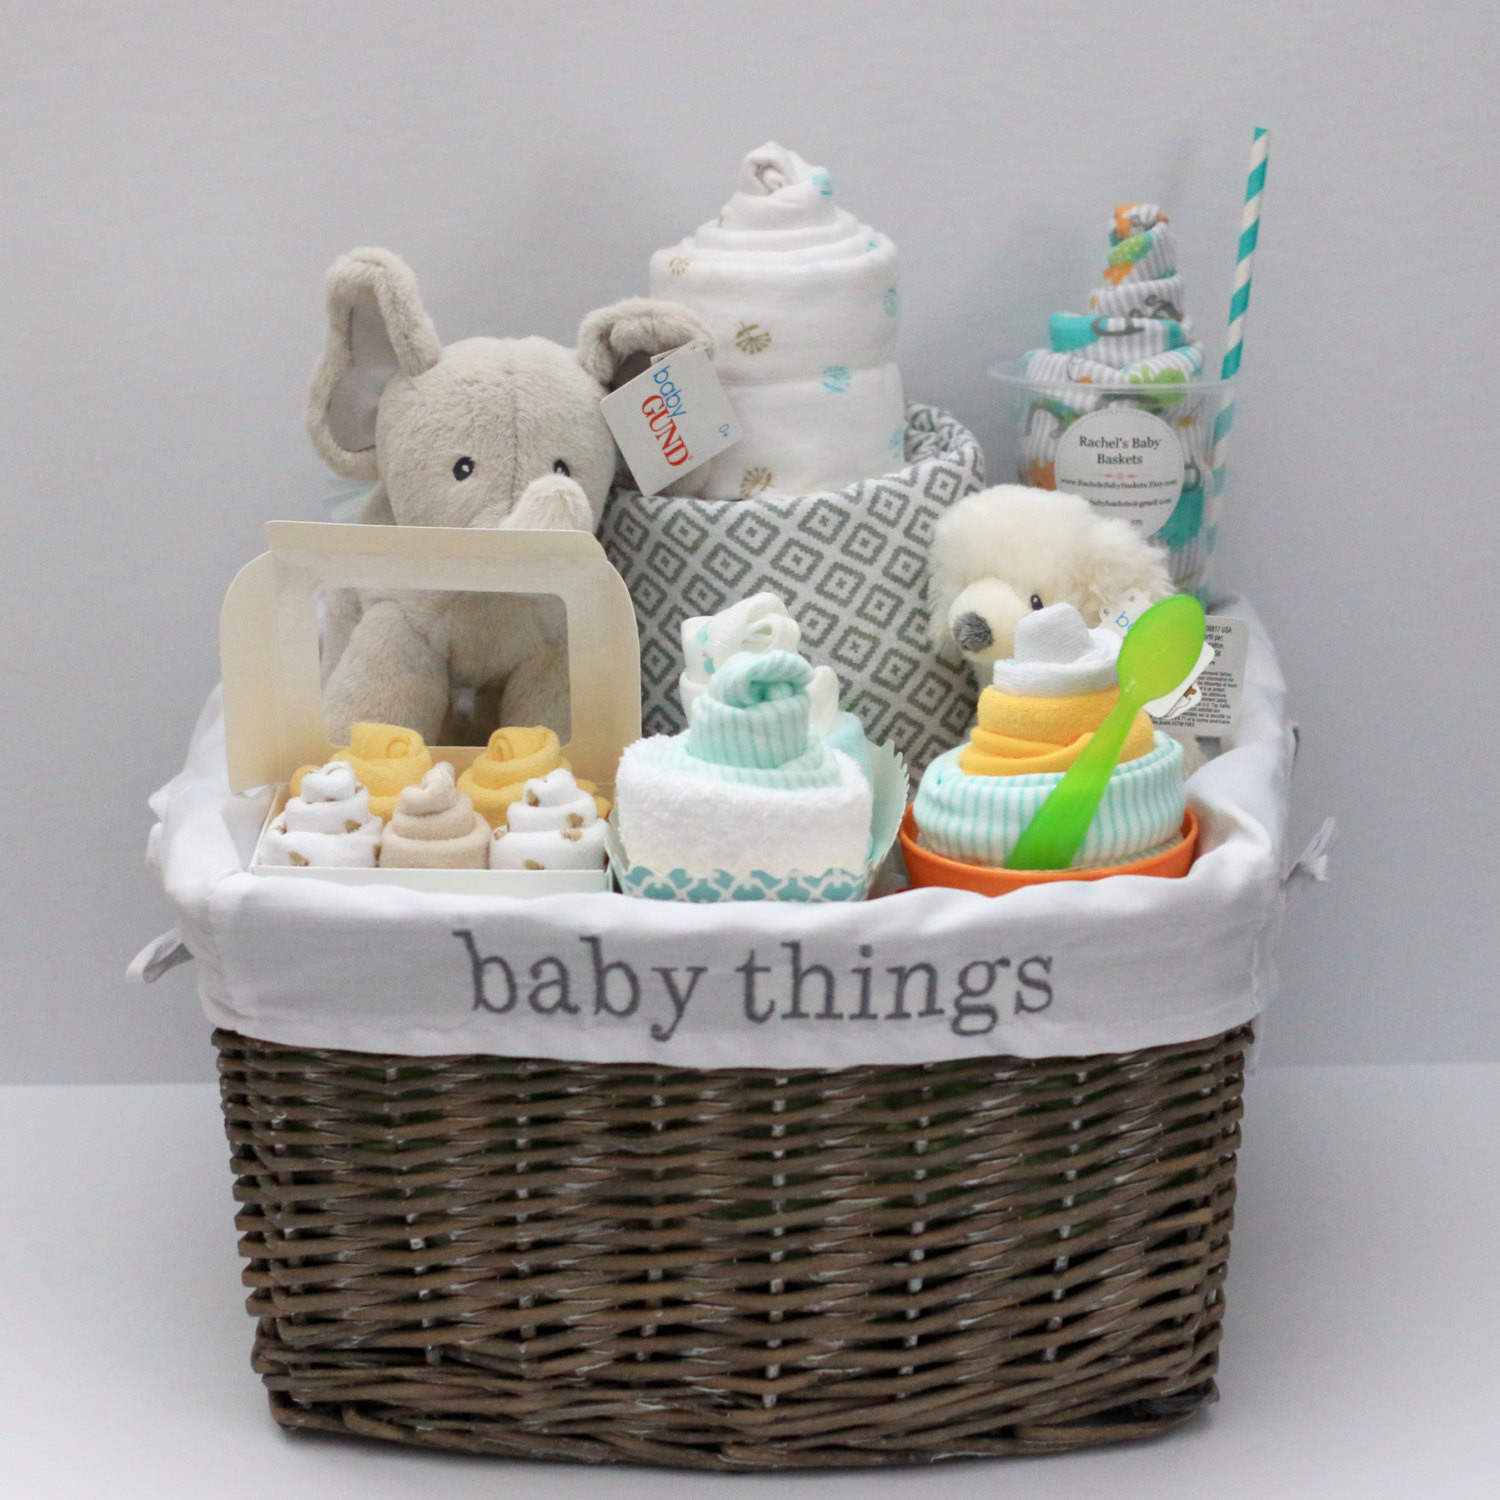 Best ideas about Gift Ideas For Baby Shower . Save or Pin Gender Neutral Baby Gift Basket Baby Shower Gift Unique Baby Now.